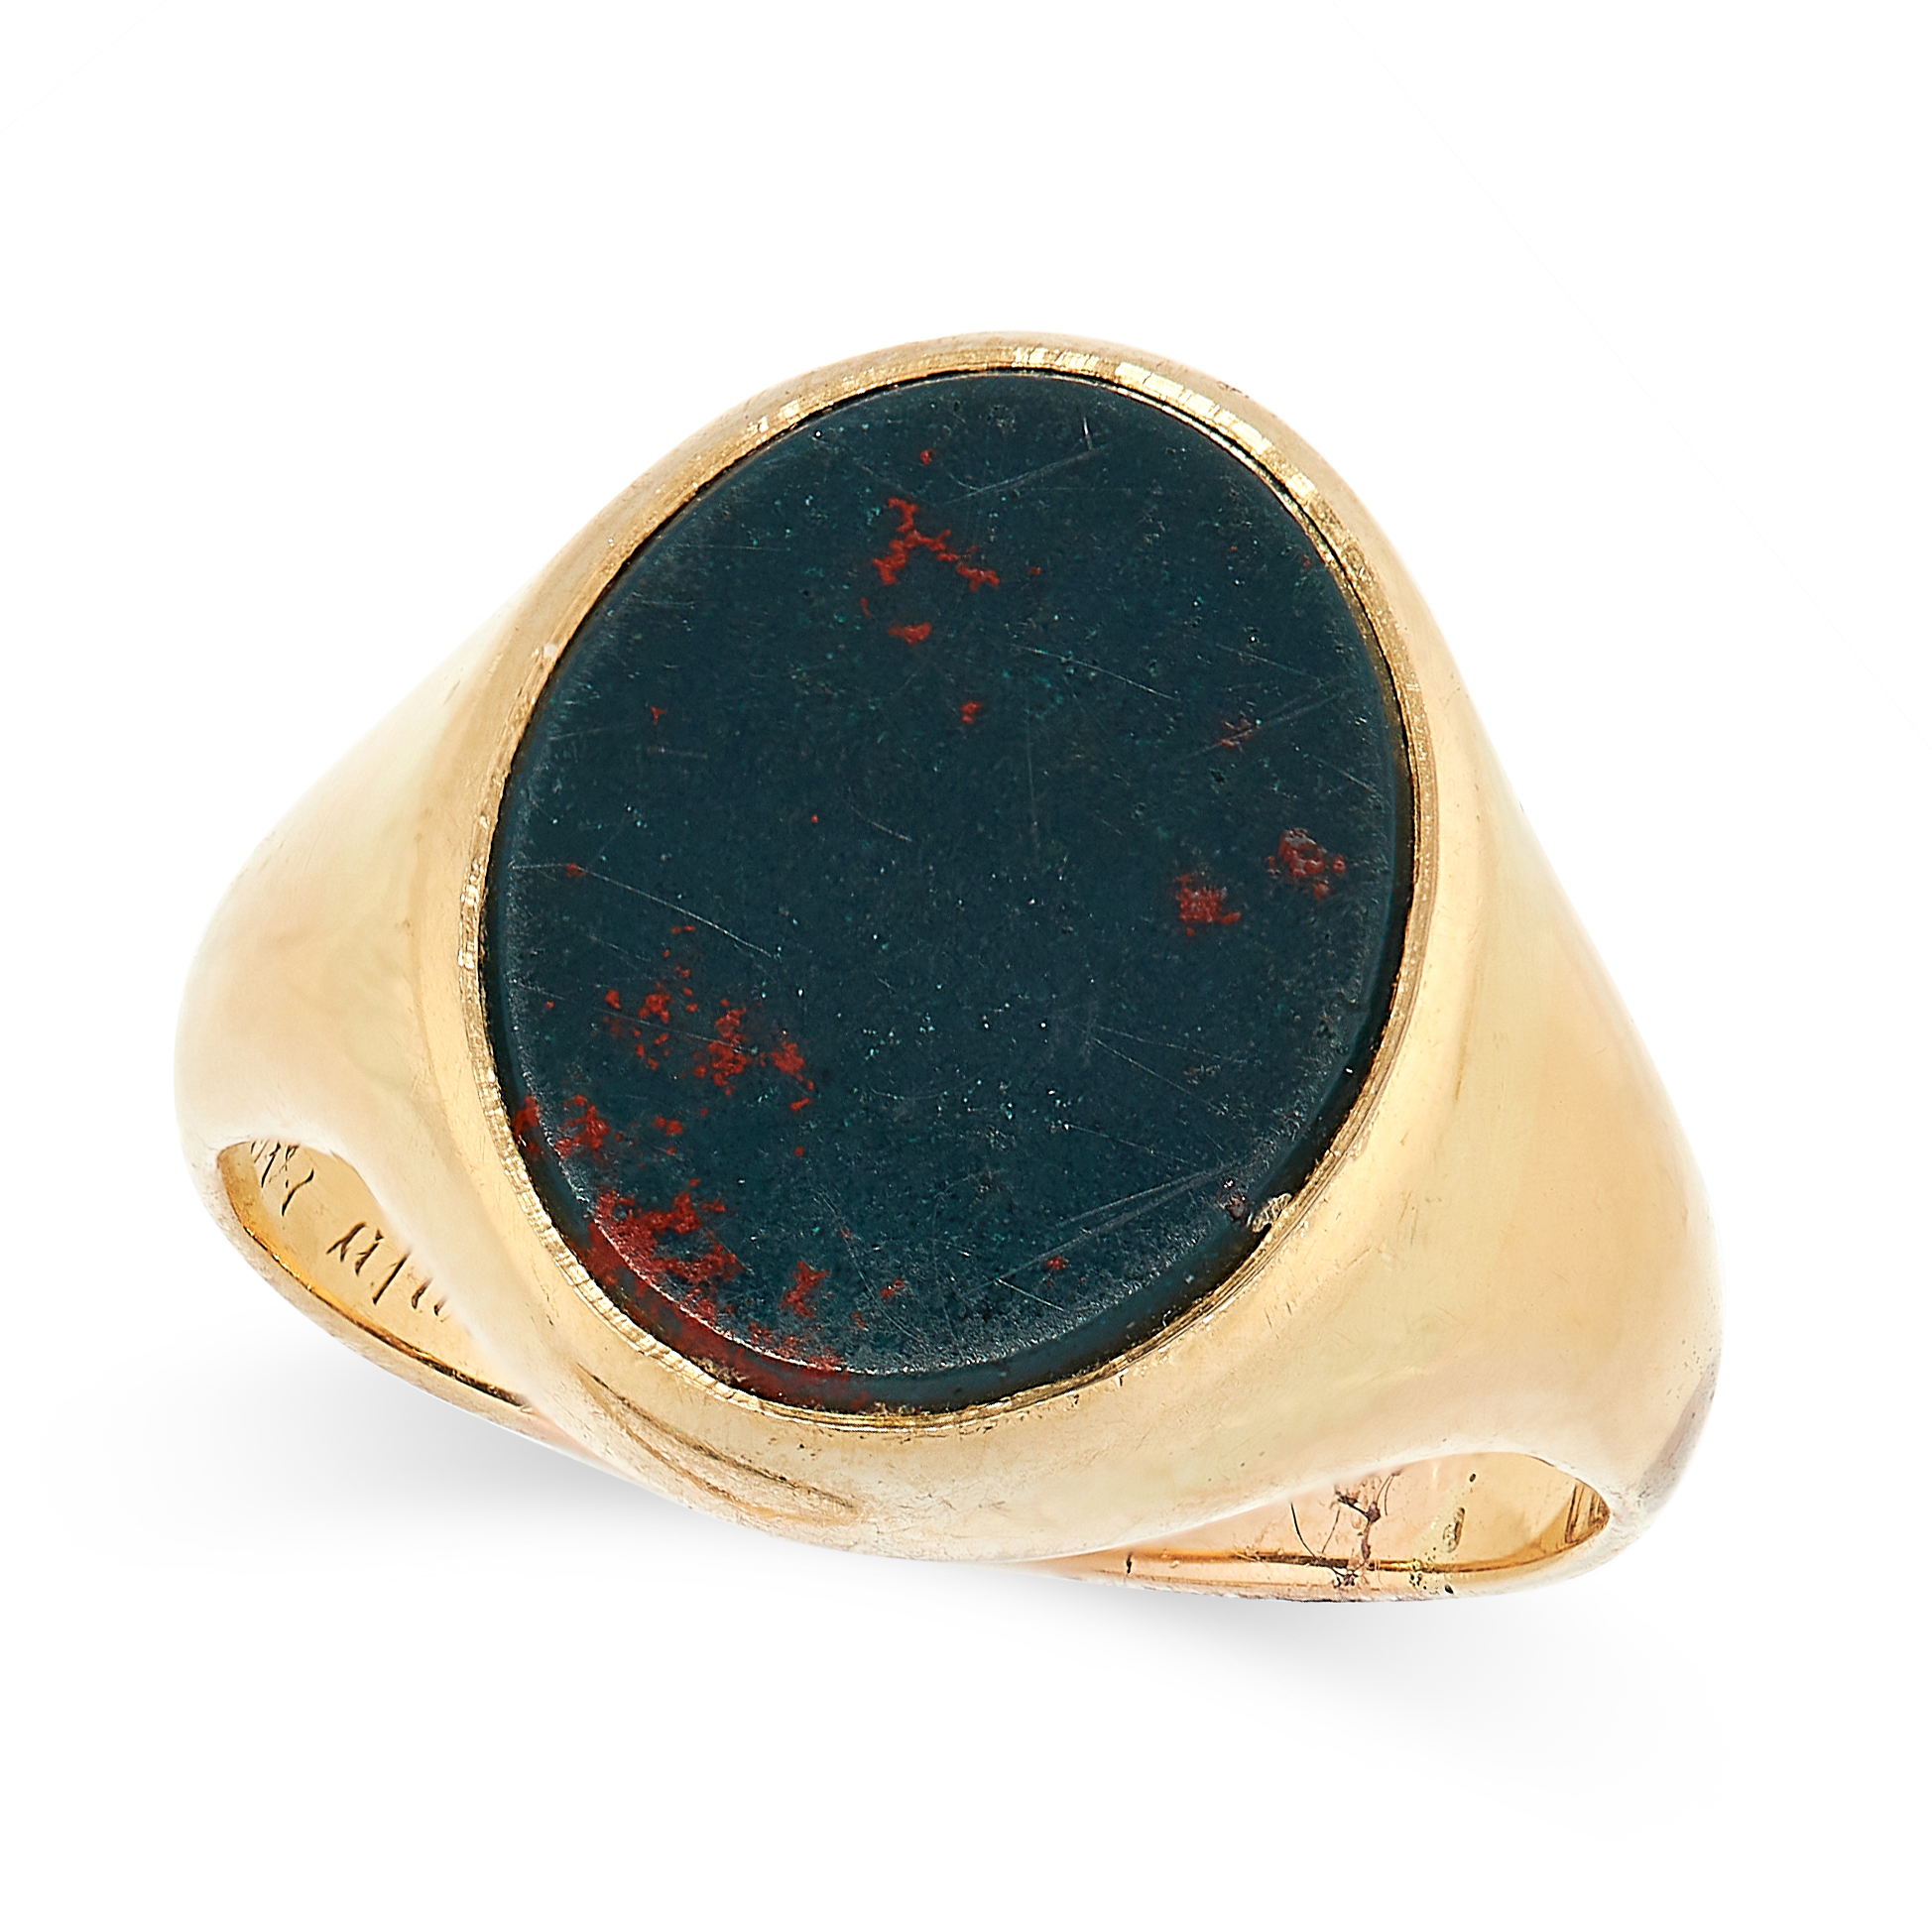 ANTIQUE BLOODSTONE SIGNET / SEAL RING in yellow gold, set with a polished oval shaped disc of